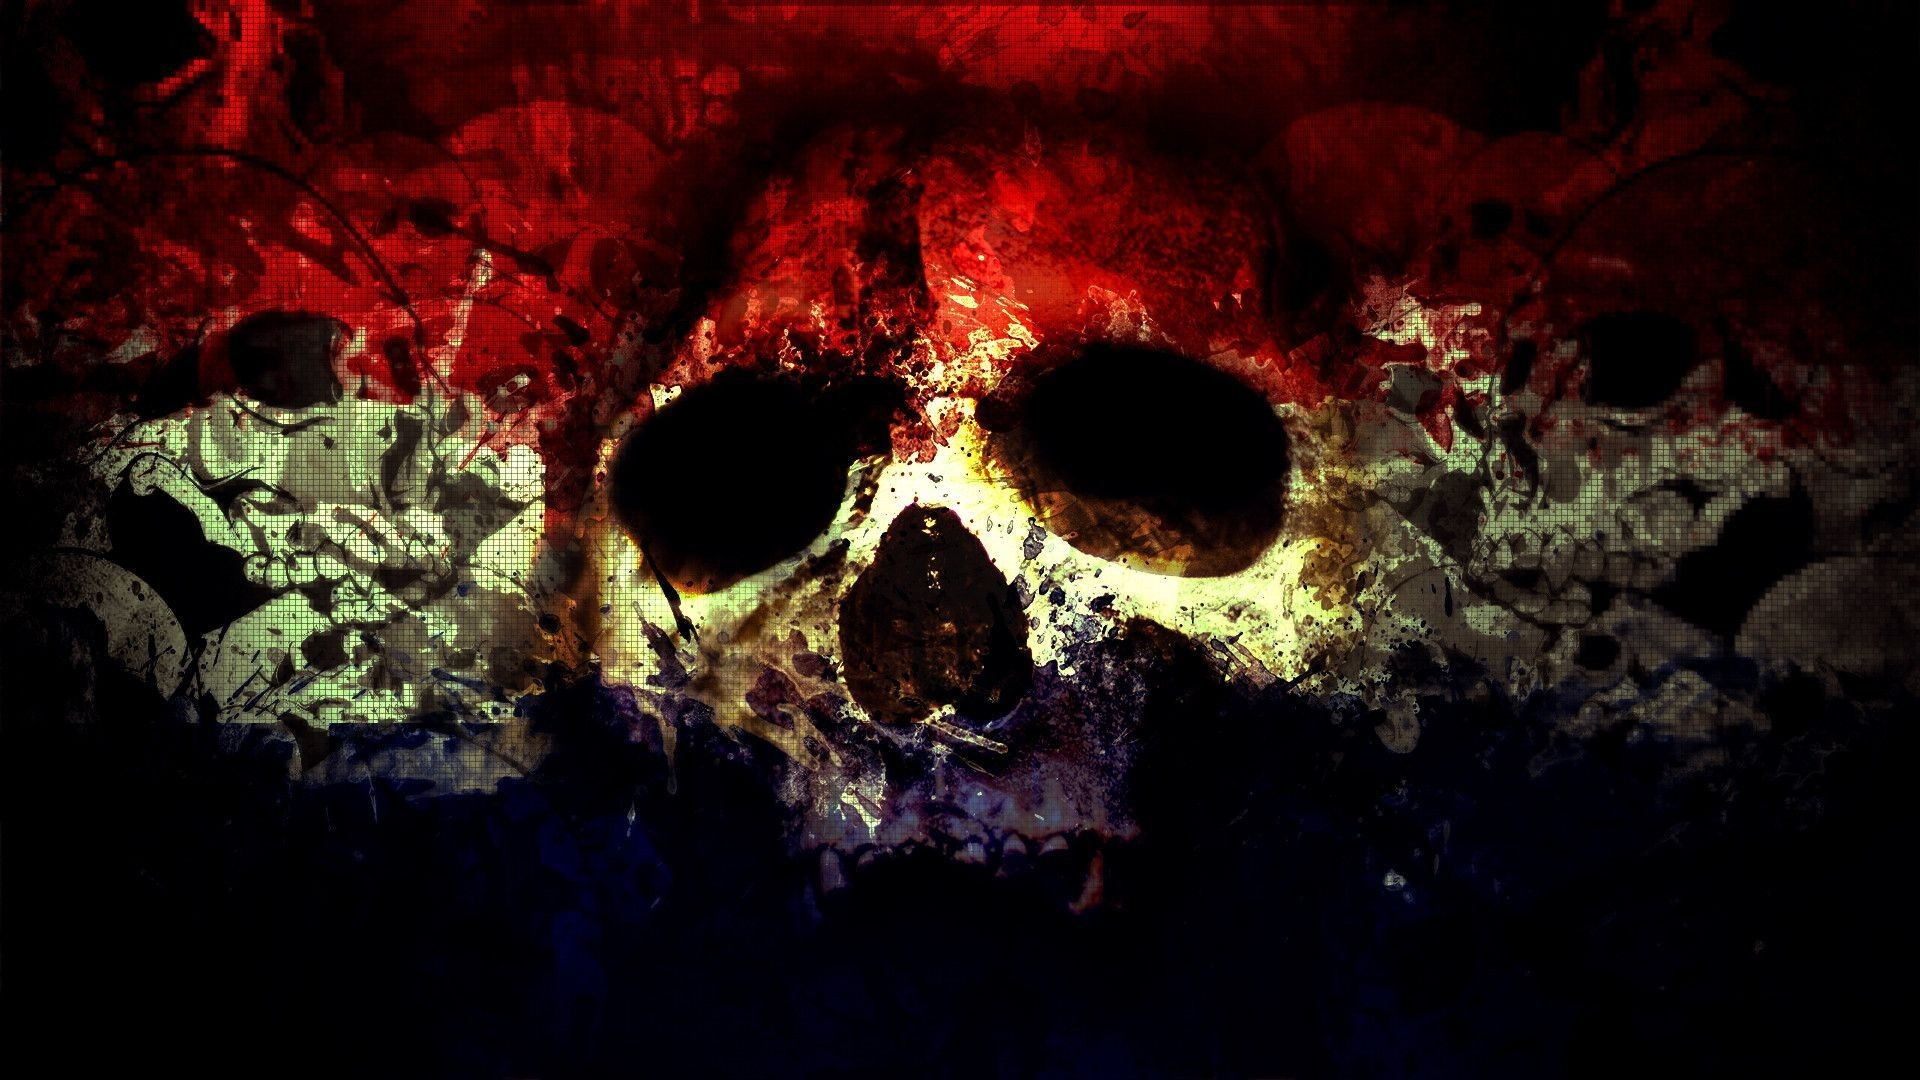 Collection of Skull Wallpaper Hd on HDWallpapers Skull Wallpaper Hd  Wallpapers)